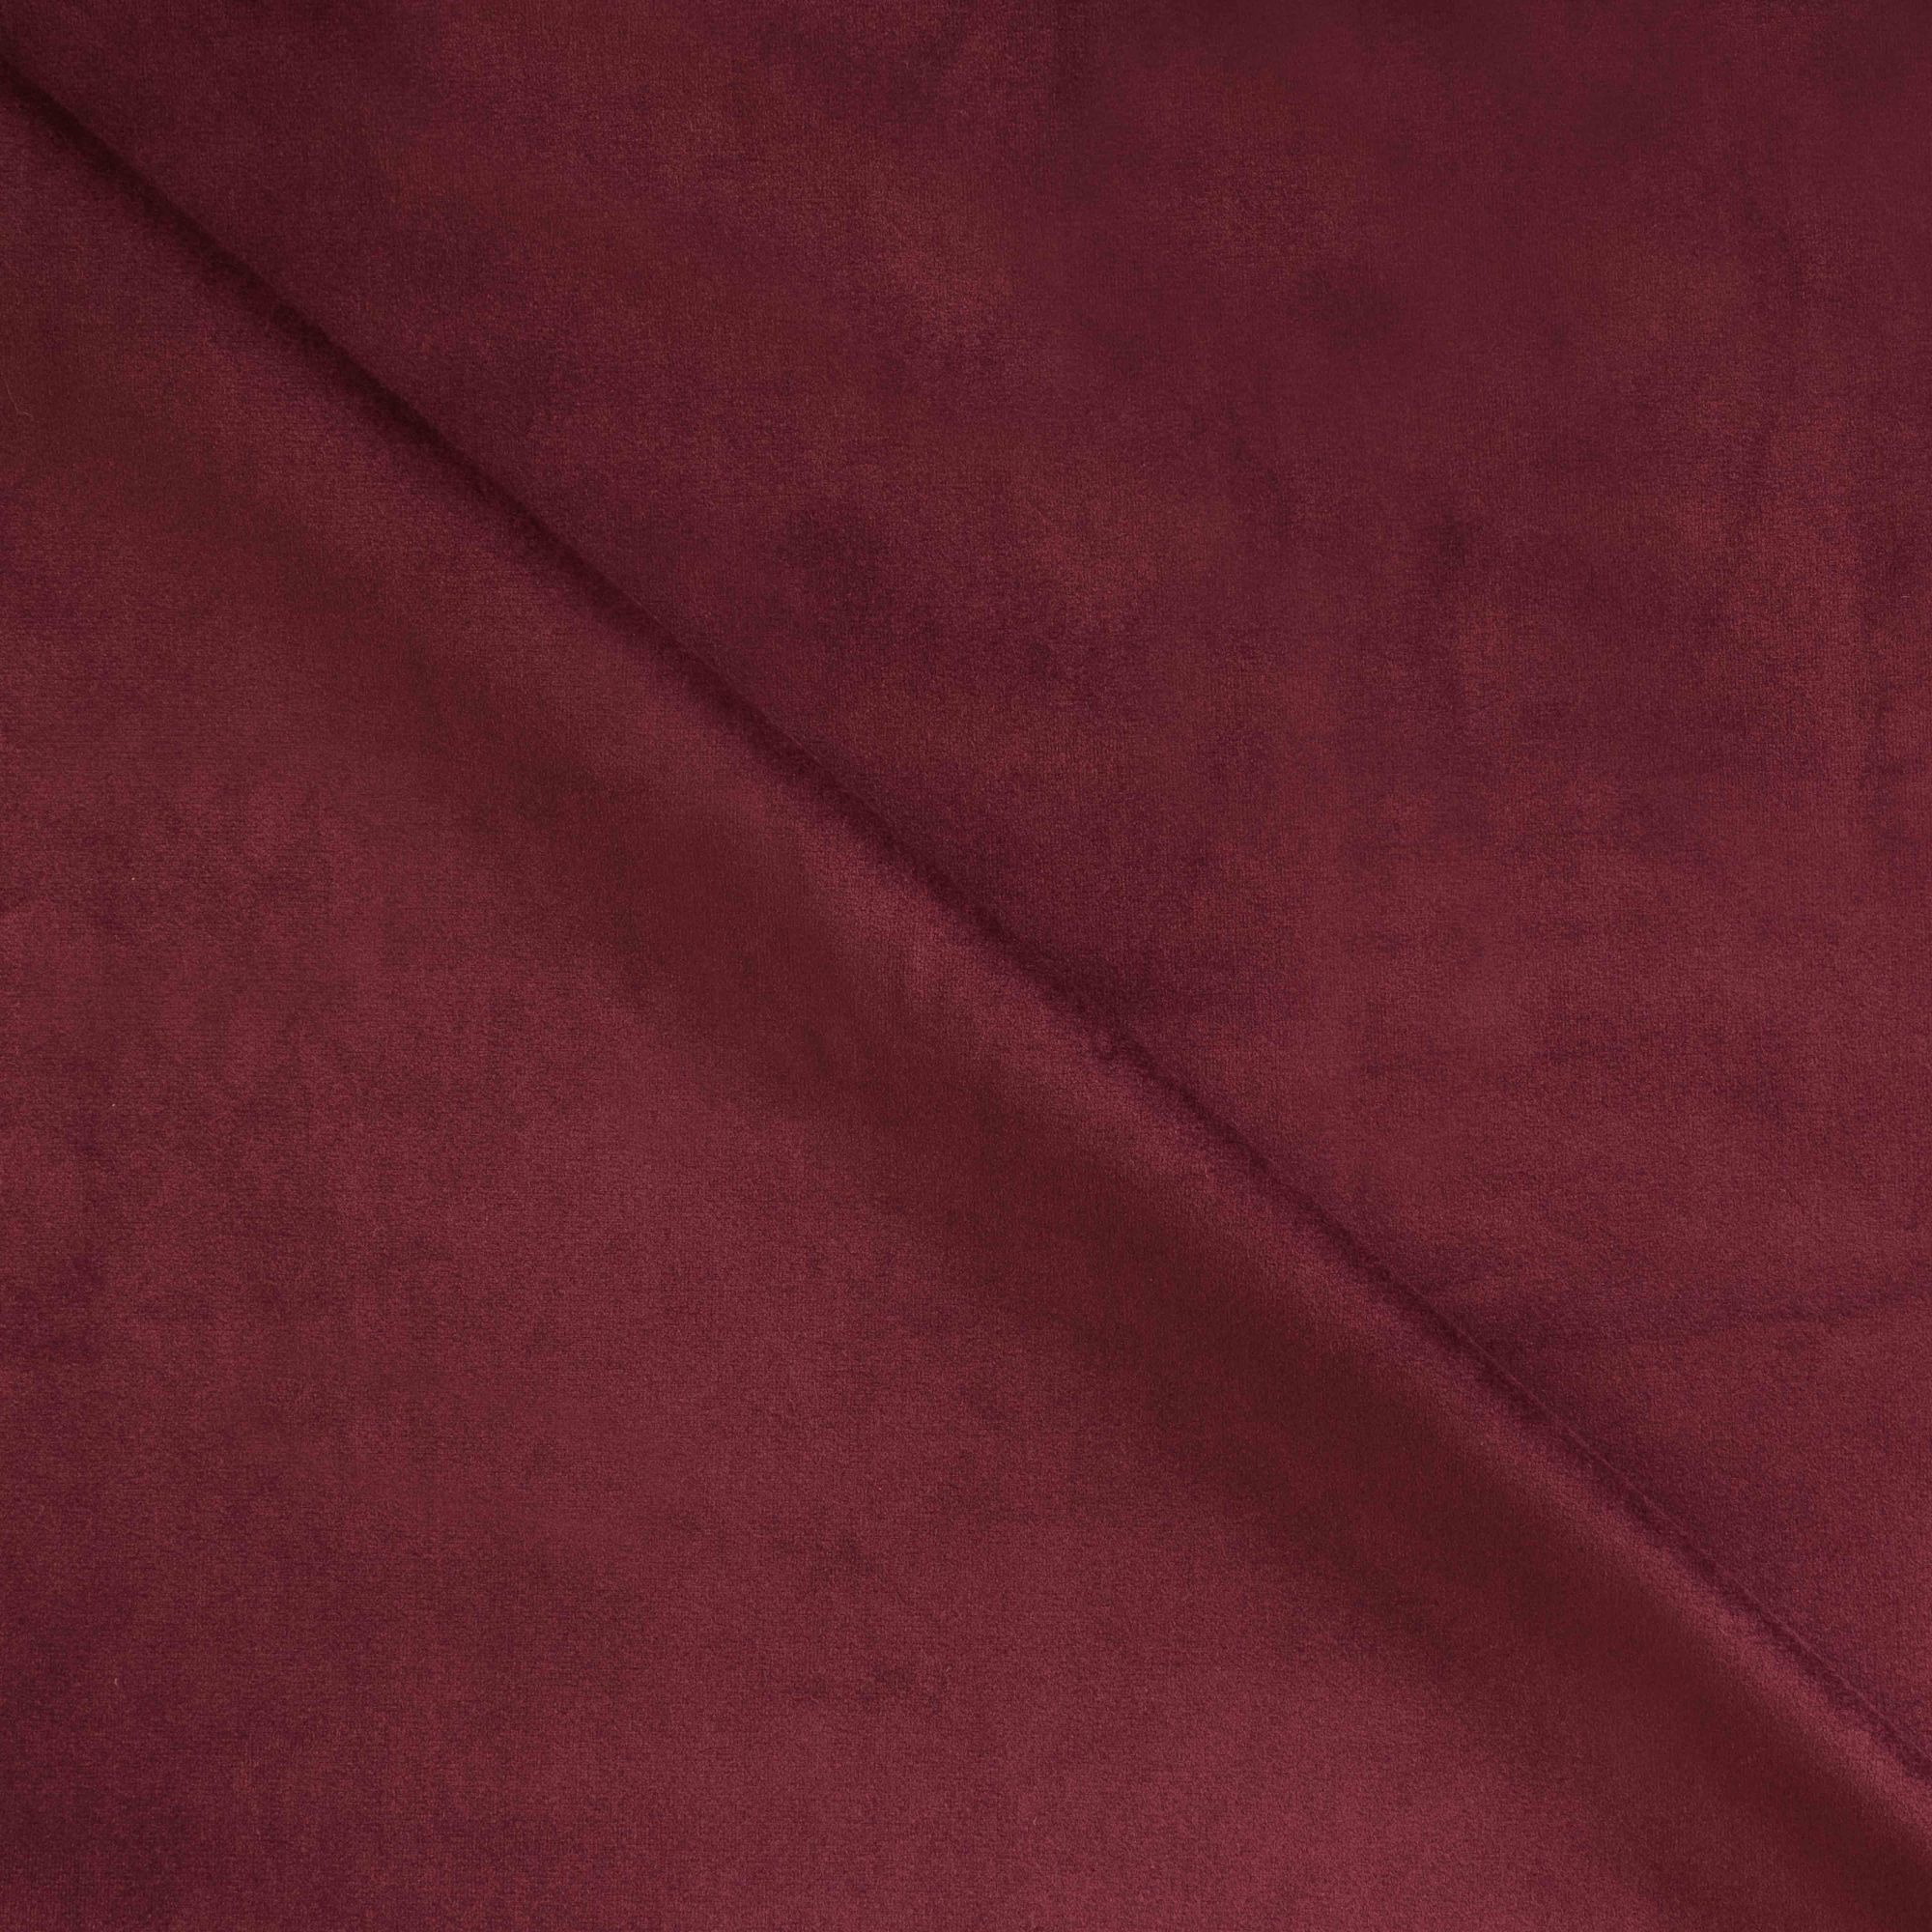 "ROYAL SAMODE VELVET POMEGRANATE FABRIC SWATCH 6"" x 6"""